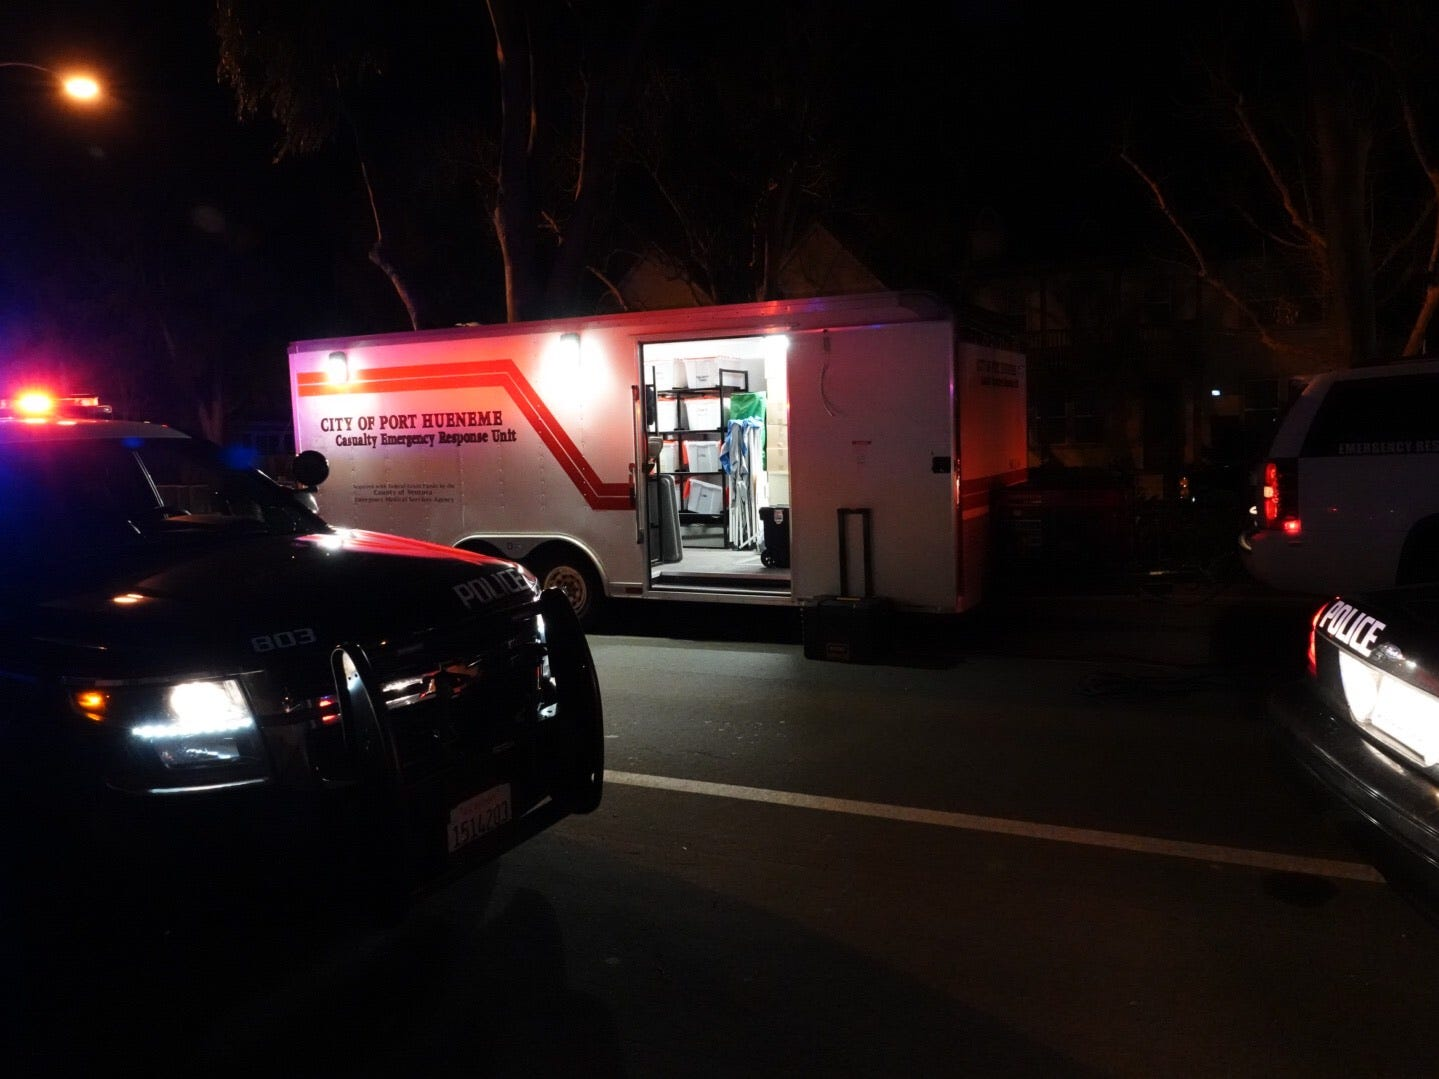 A command post is set up at the scene of of a crash on North Ventura Road in Port Hueneme Sunday night after an incident involving a police officer.